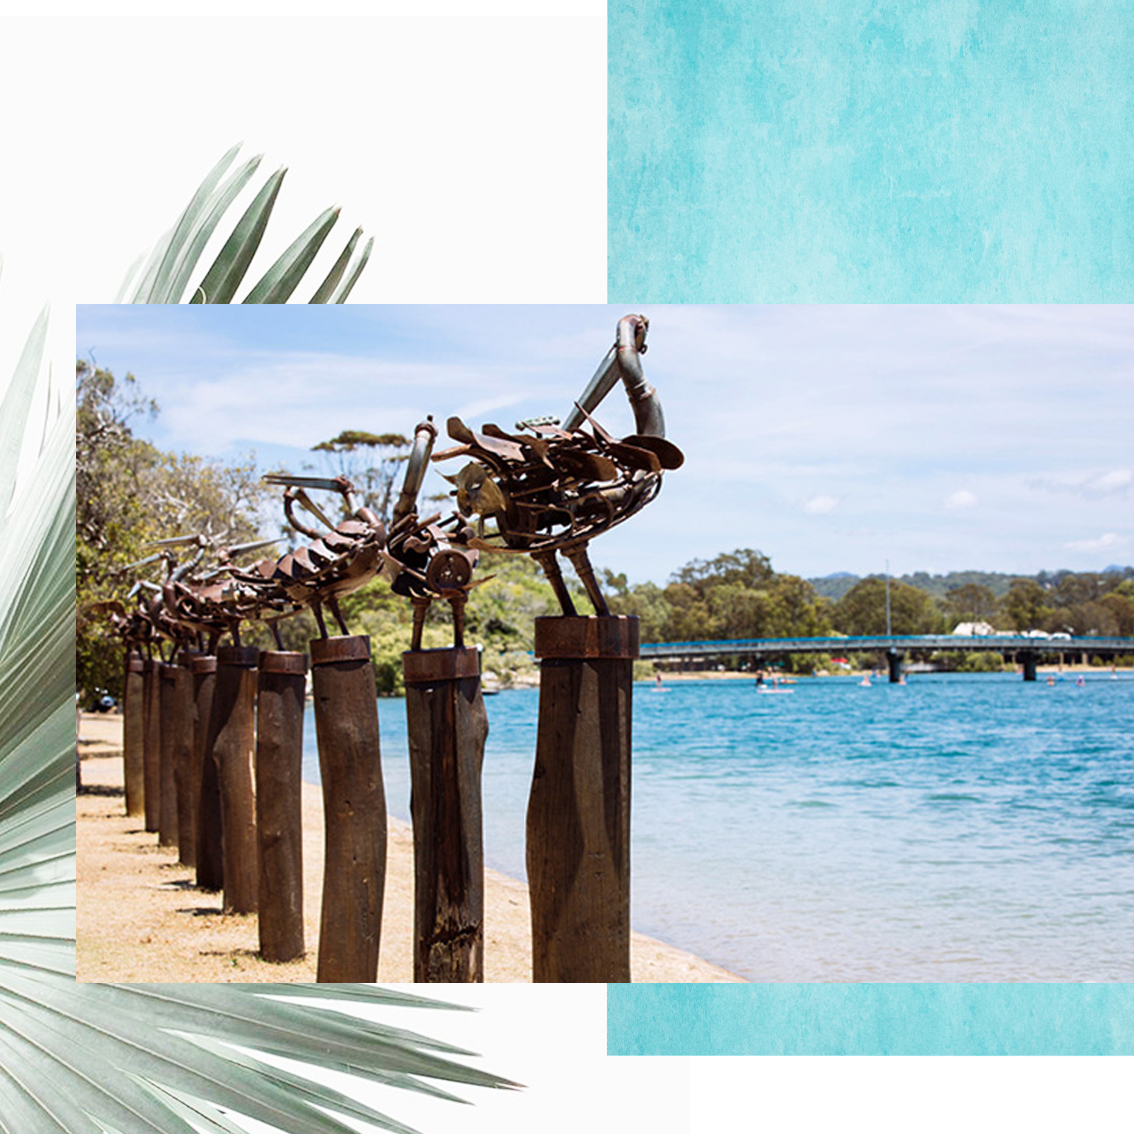 Development Incentives Available - Richard Moffat Public Art for Gold Coast.